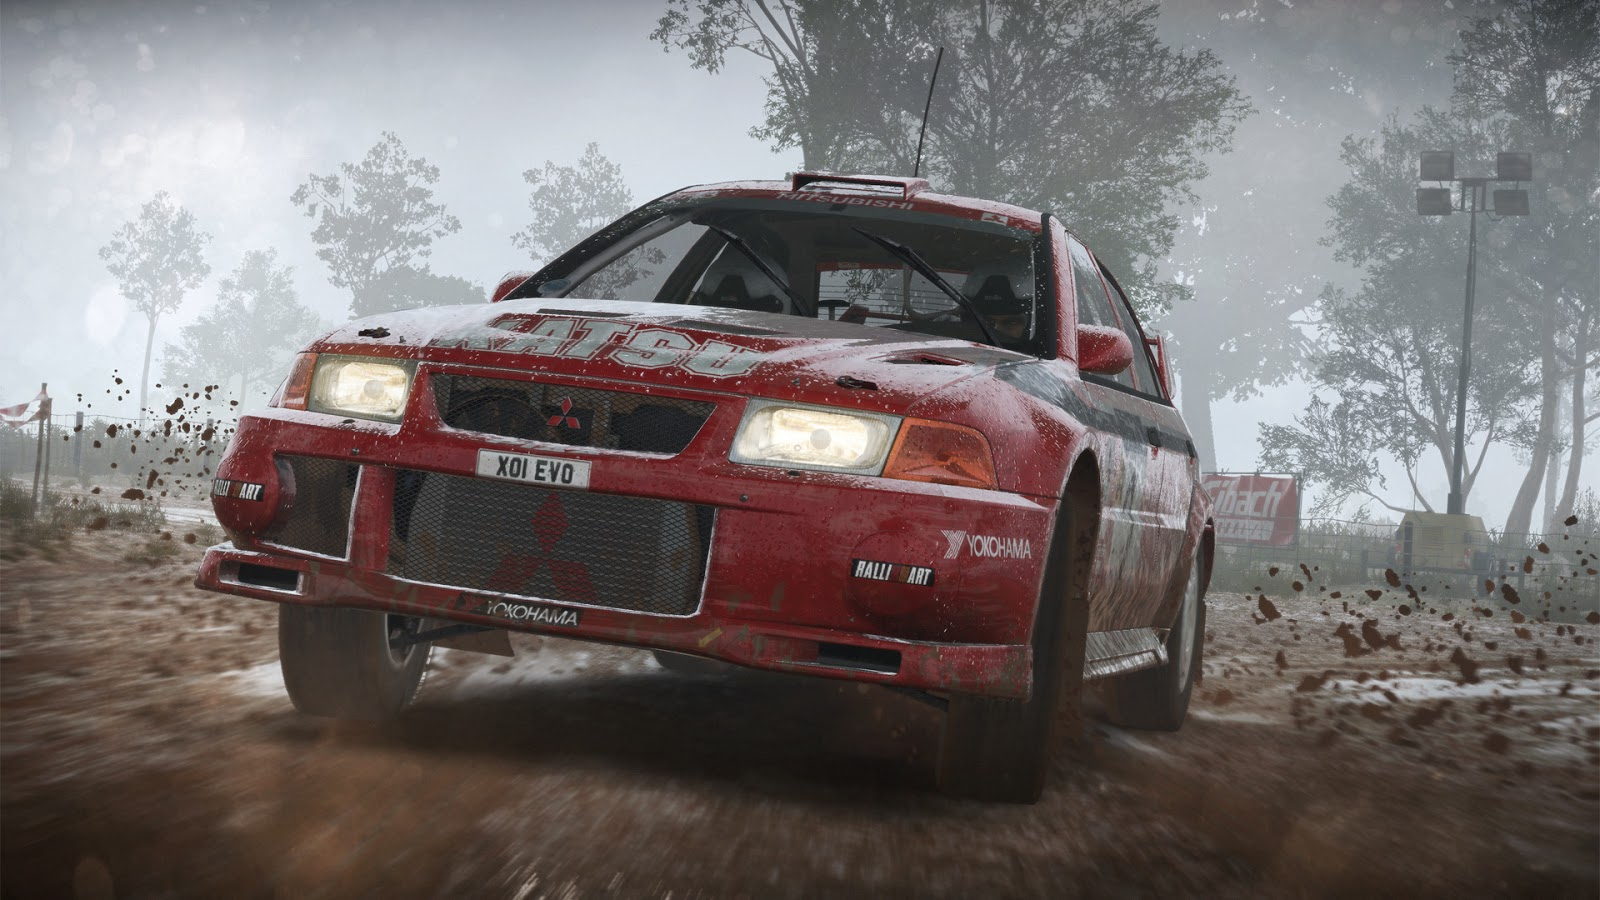 DiRT 4 ESPAÑOL PC (RELOADED) + Update v1.06 (BAT) + REPACK 5 DVD5 (JPW) 6